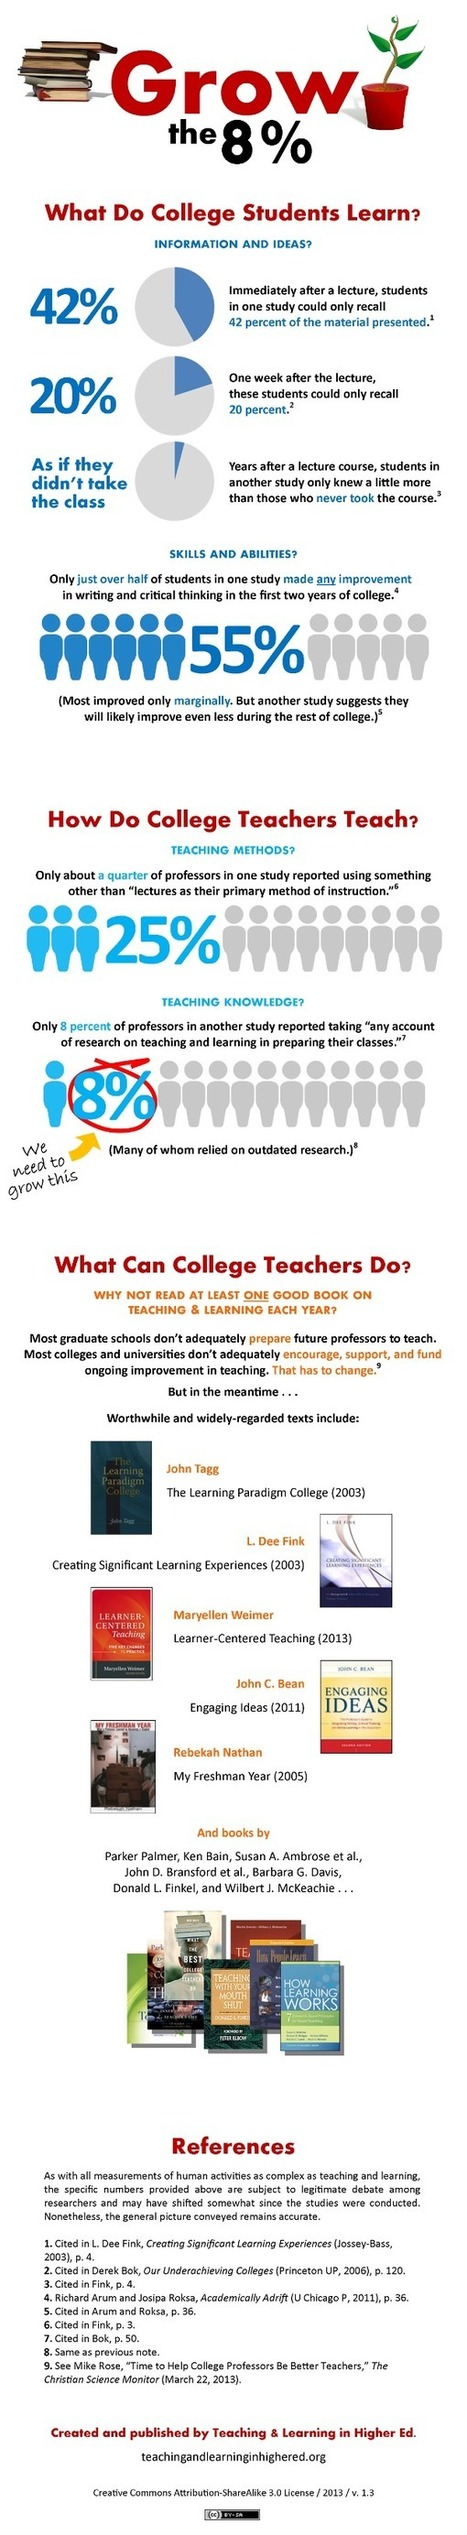 Grow the 8% (Infographic) | The Educational Technologist | Scoop.it